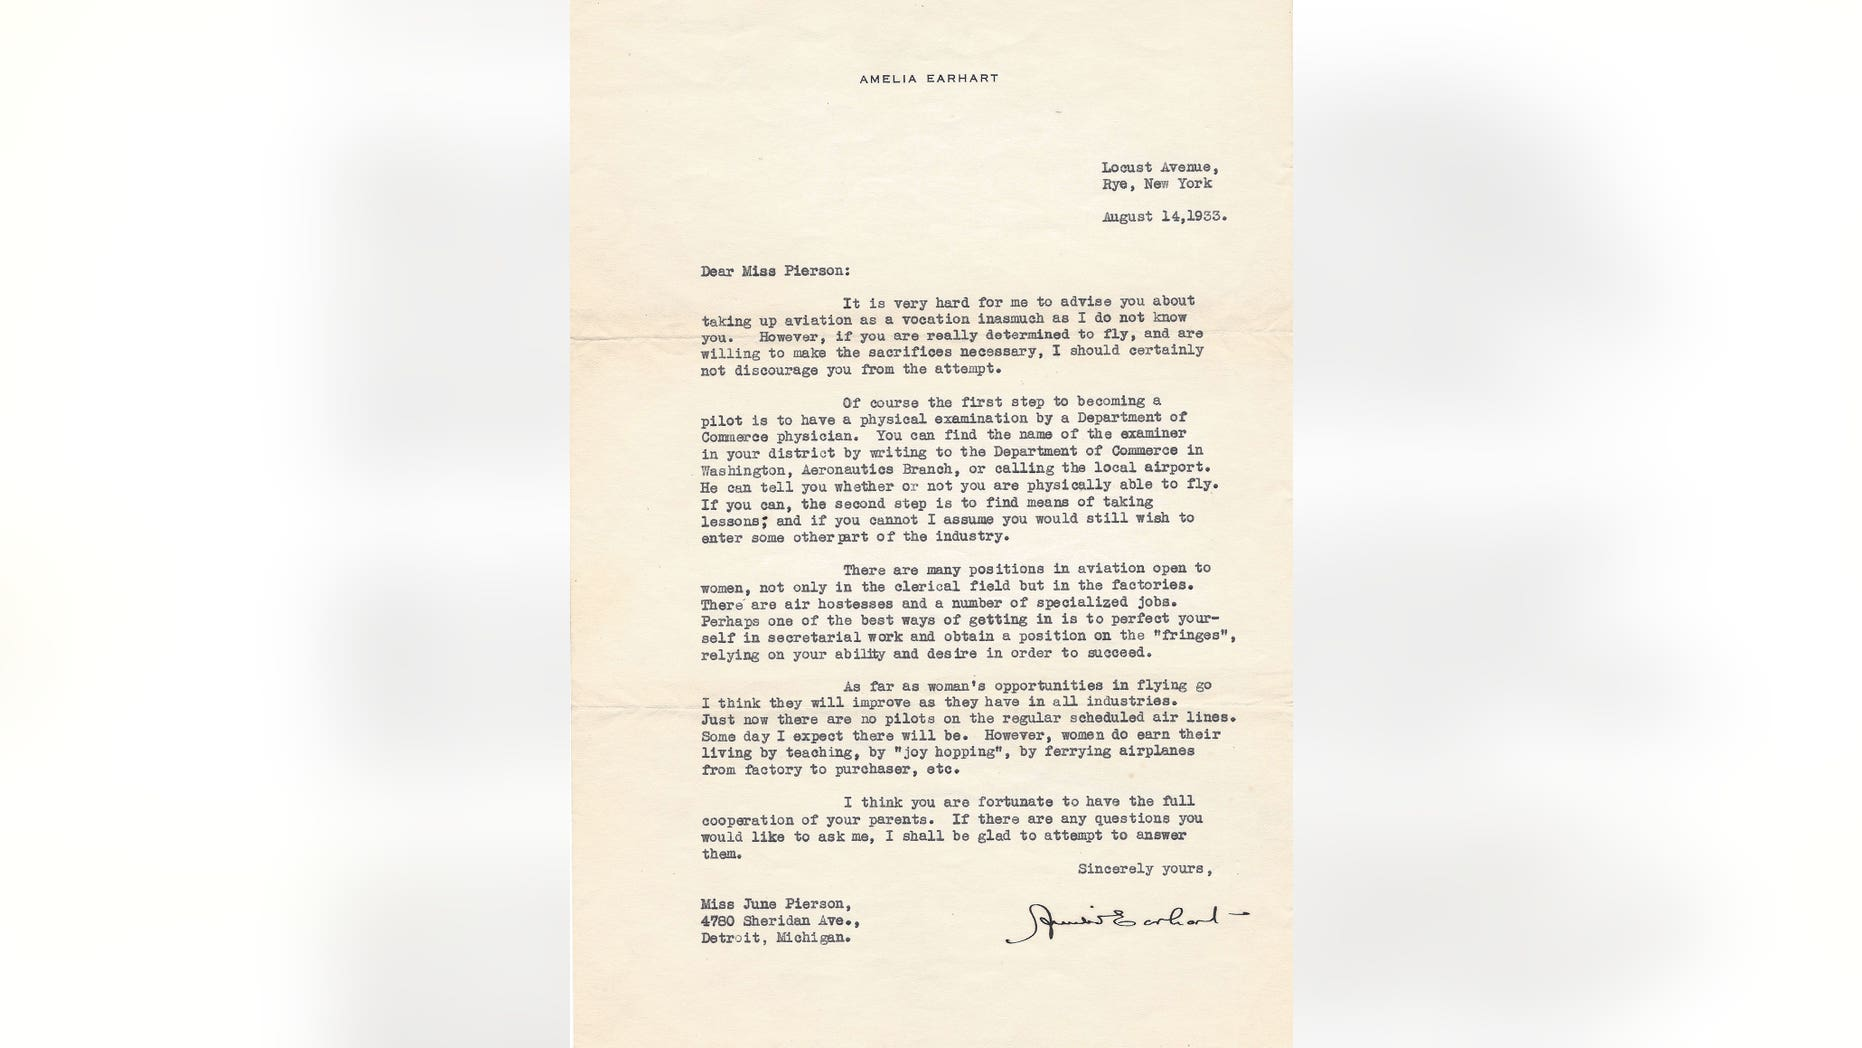 This letter, signed by aviation pioneer Amelia Earhart, was written to 13-year-old June Pierson in 1933. (Credit: The Raab Collection)